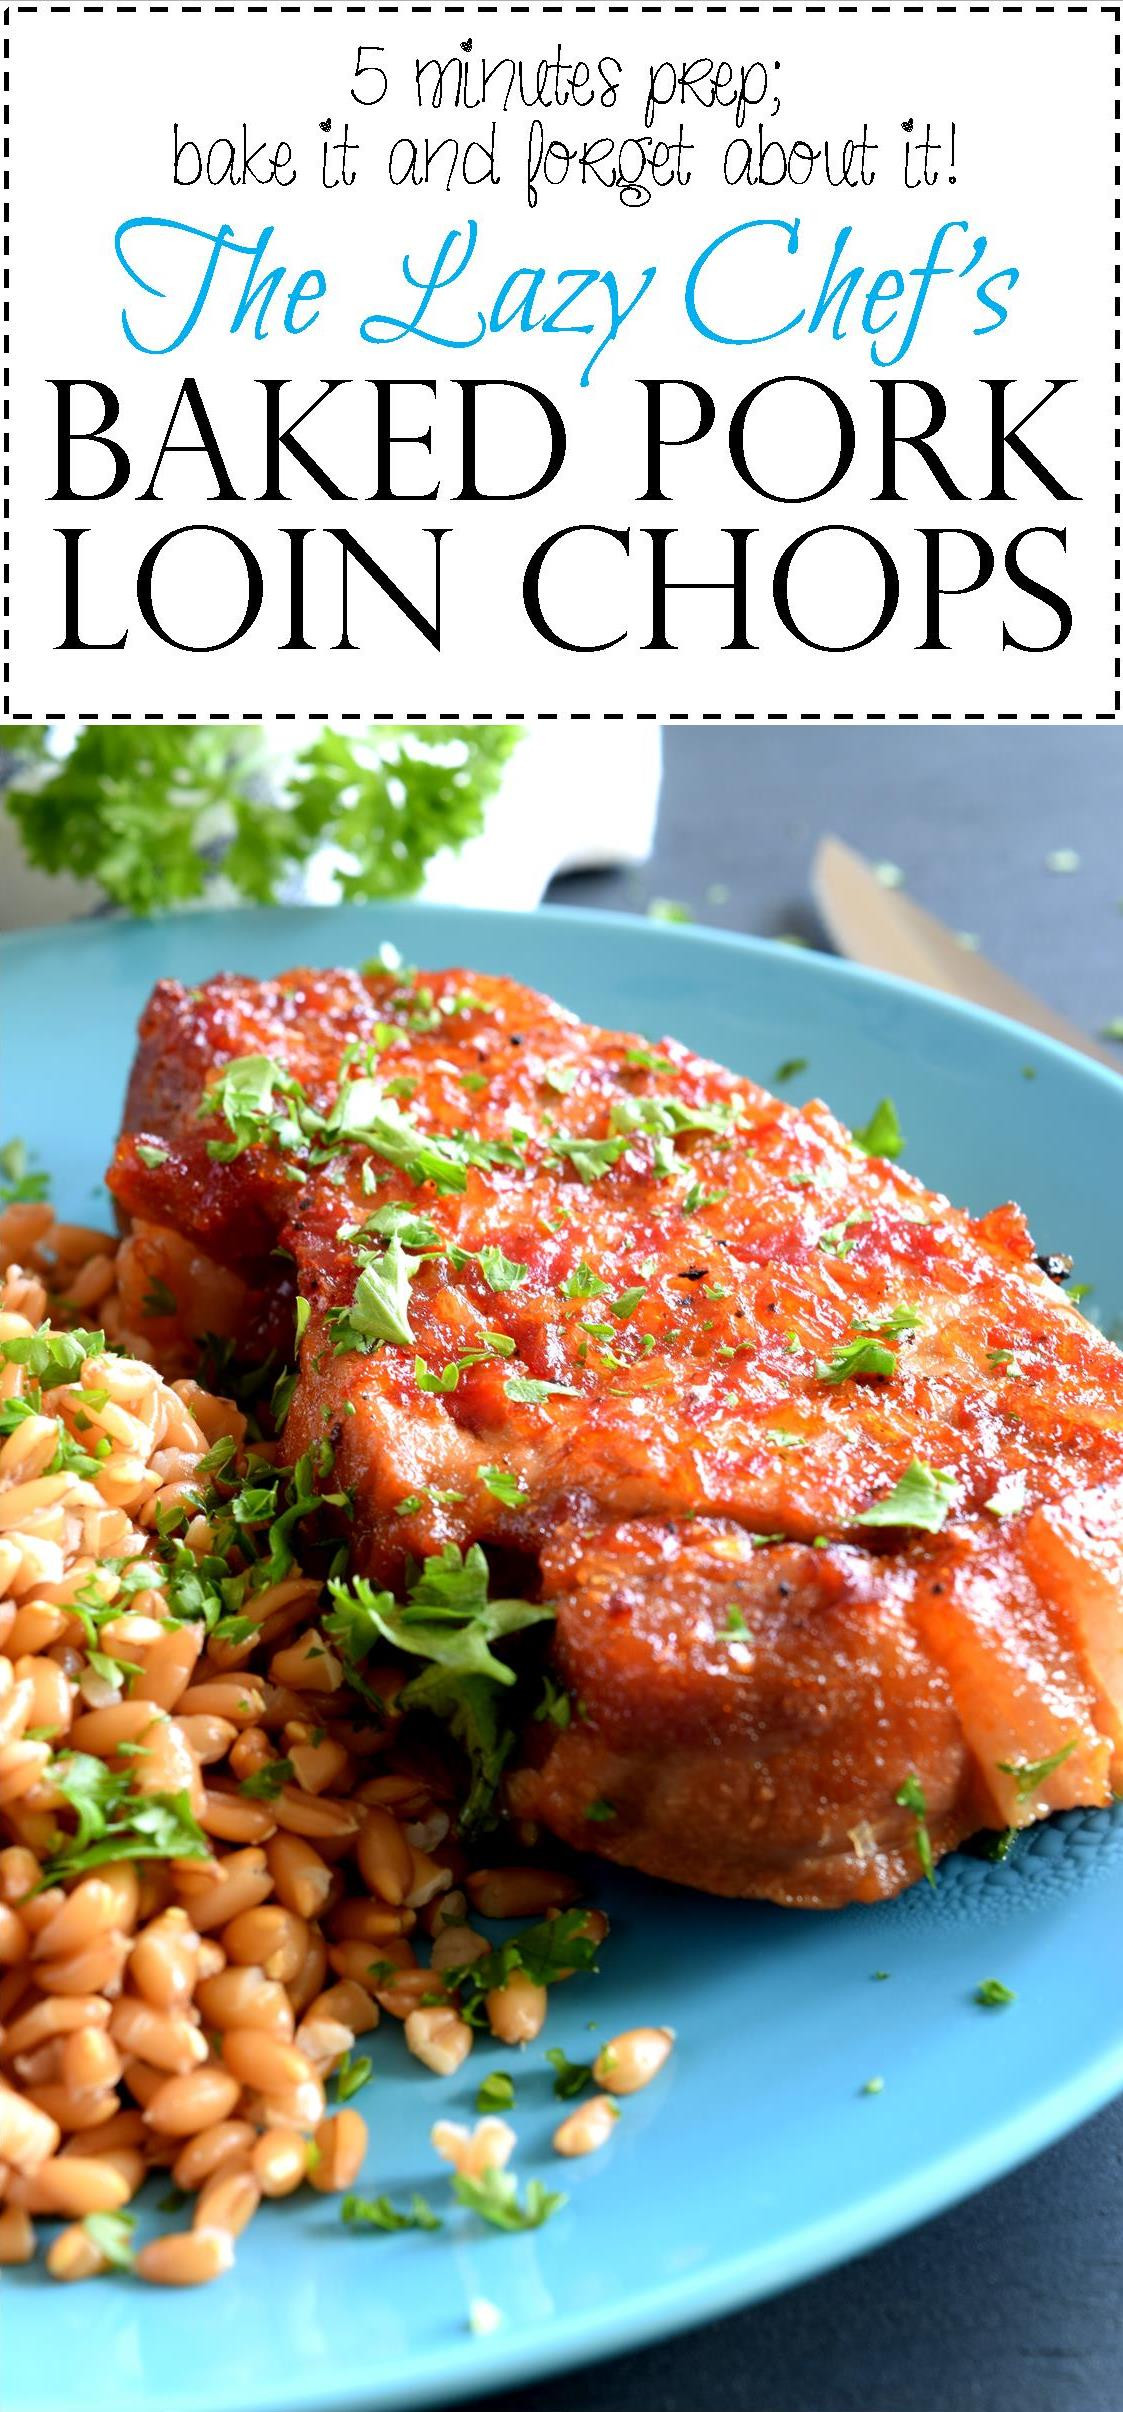 Baked Pork Loin Chops  Baked Pork Loin Chops Lord Byron s Kitchen